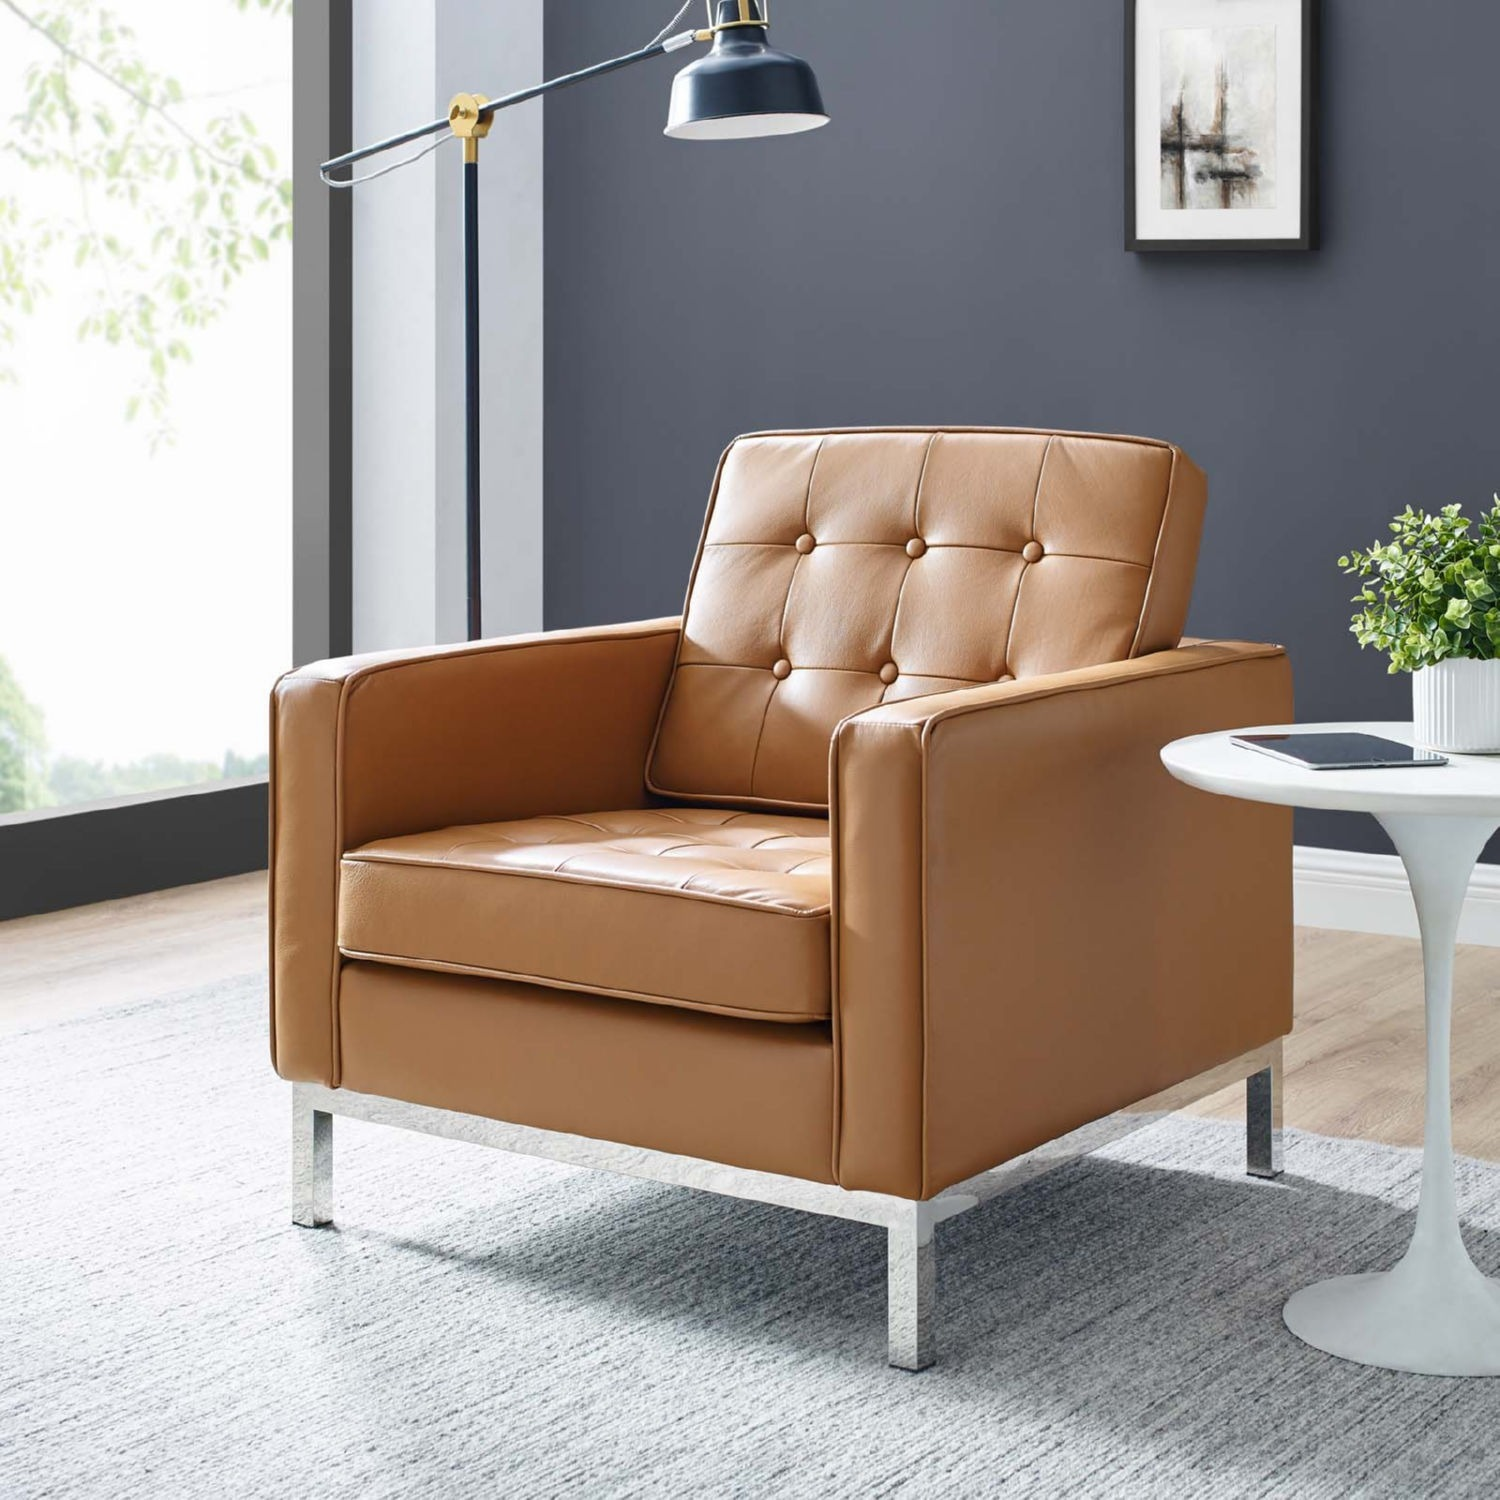 Modern Armchair In Tan Leather W/ Tufted Buttons - image-7